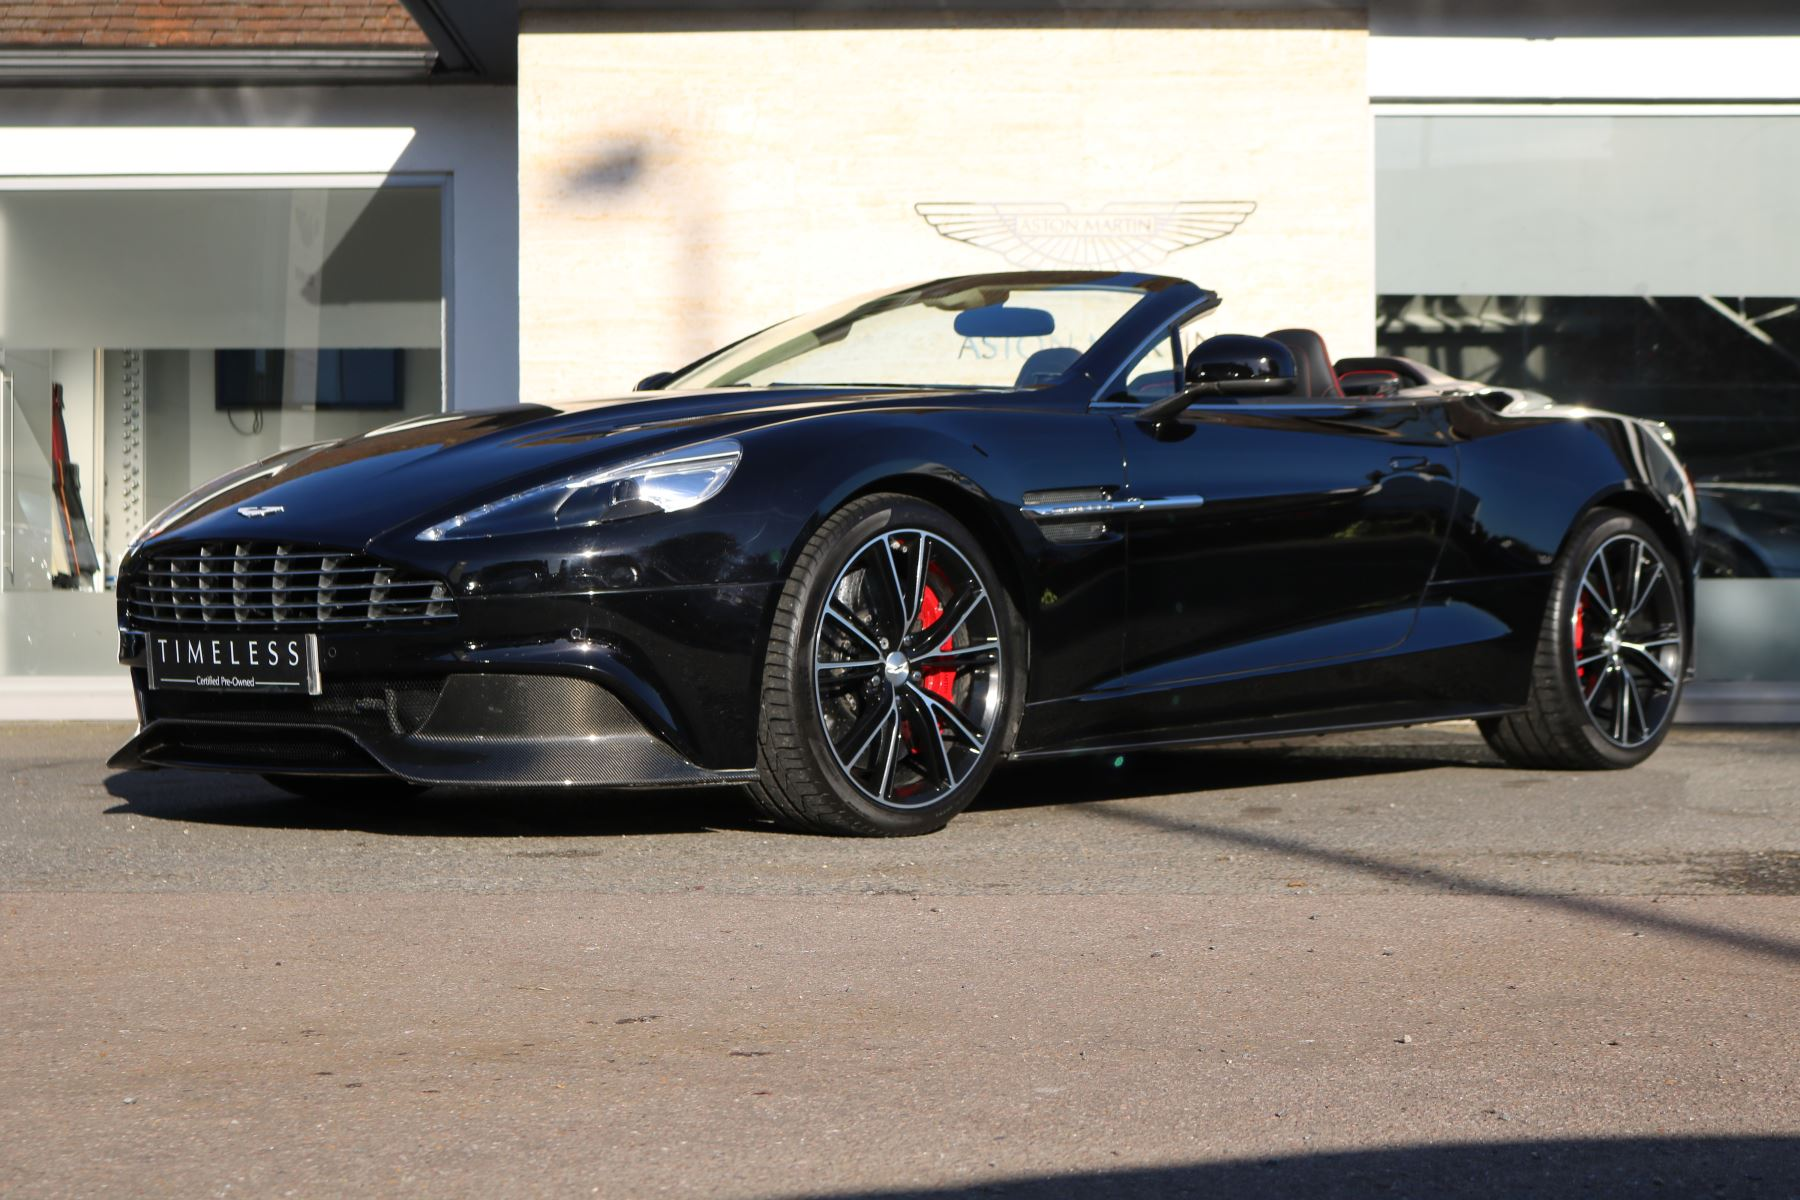 Used Aston Martin Vanquish Black Cars For Sale Grange - Black aston martin vanquish